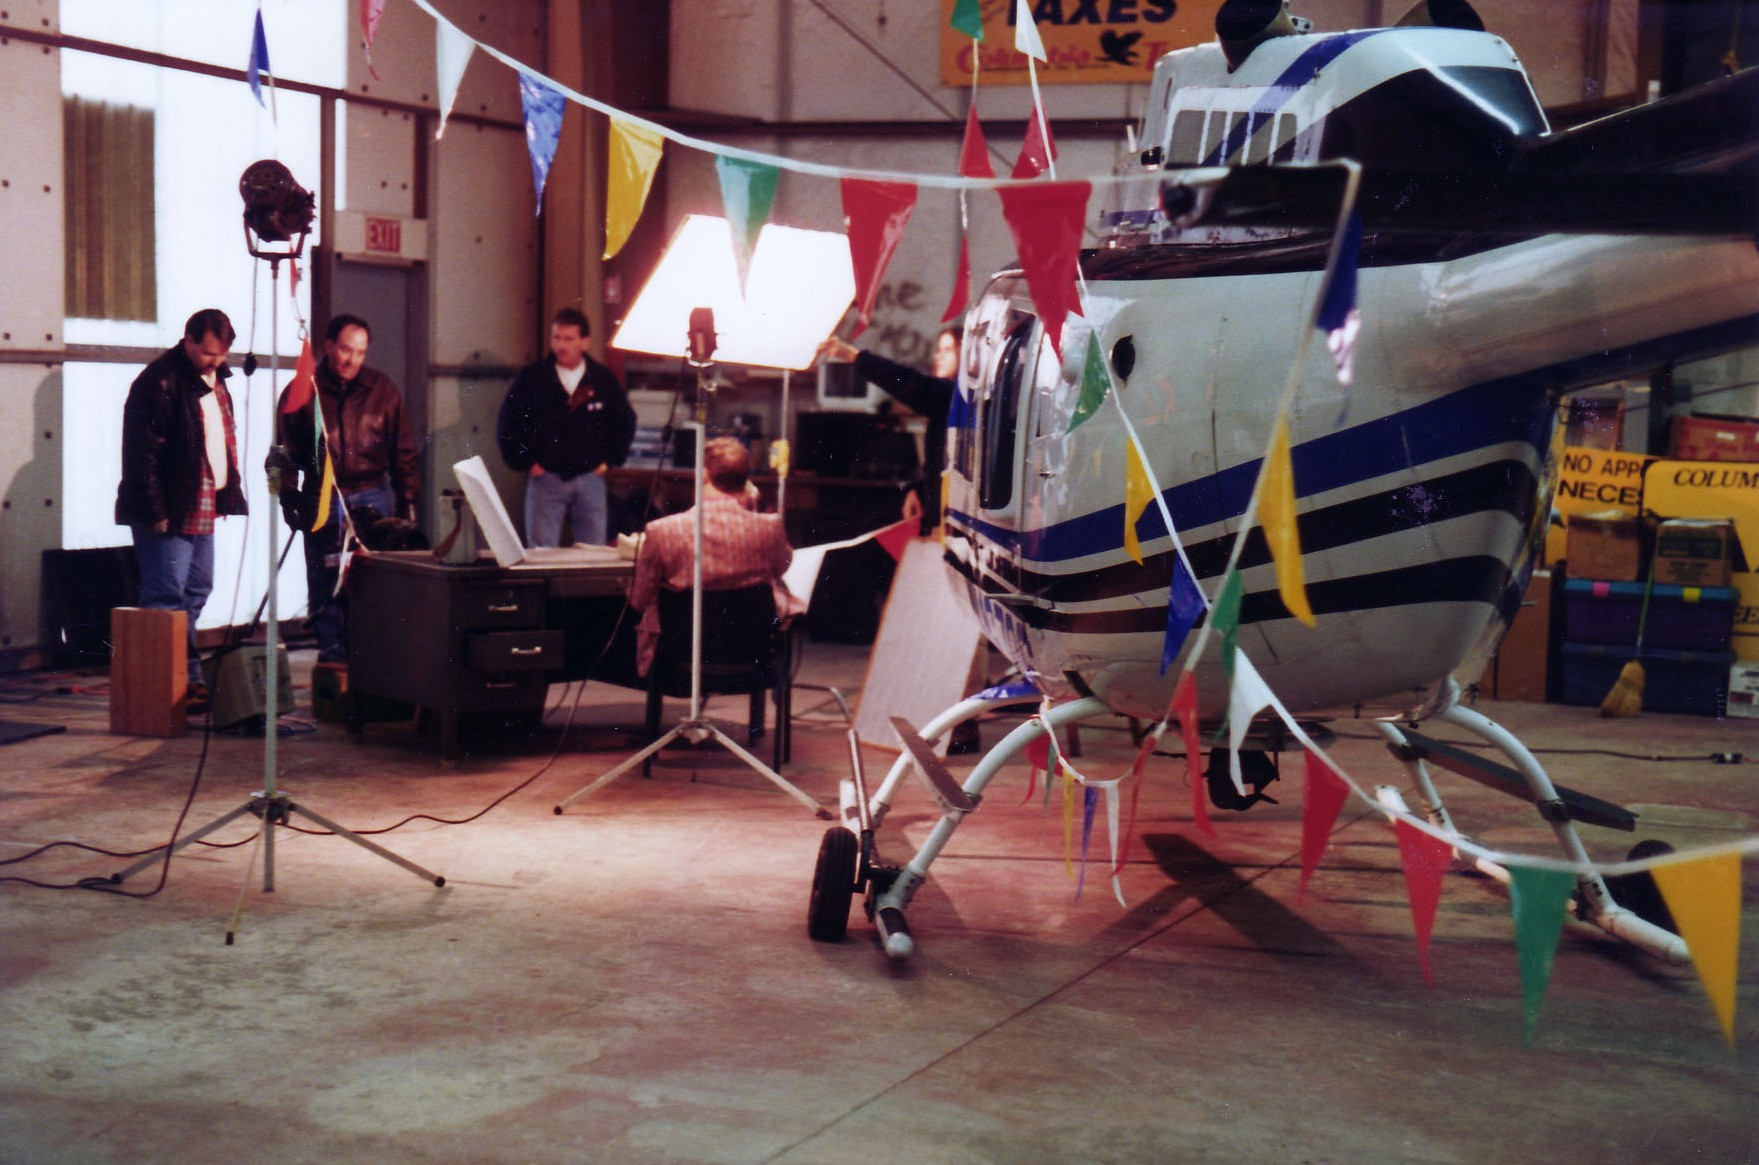 Behind the scenes of a KGW helicopter promo shoot